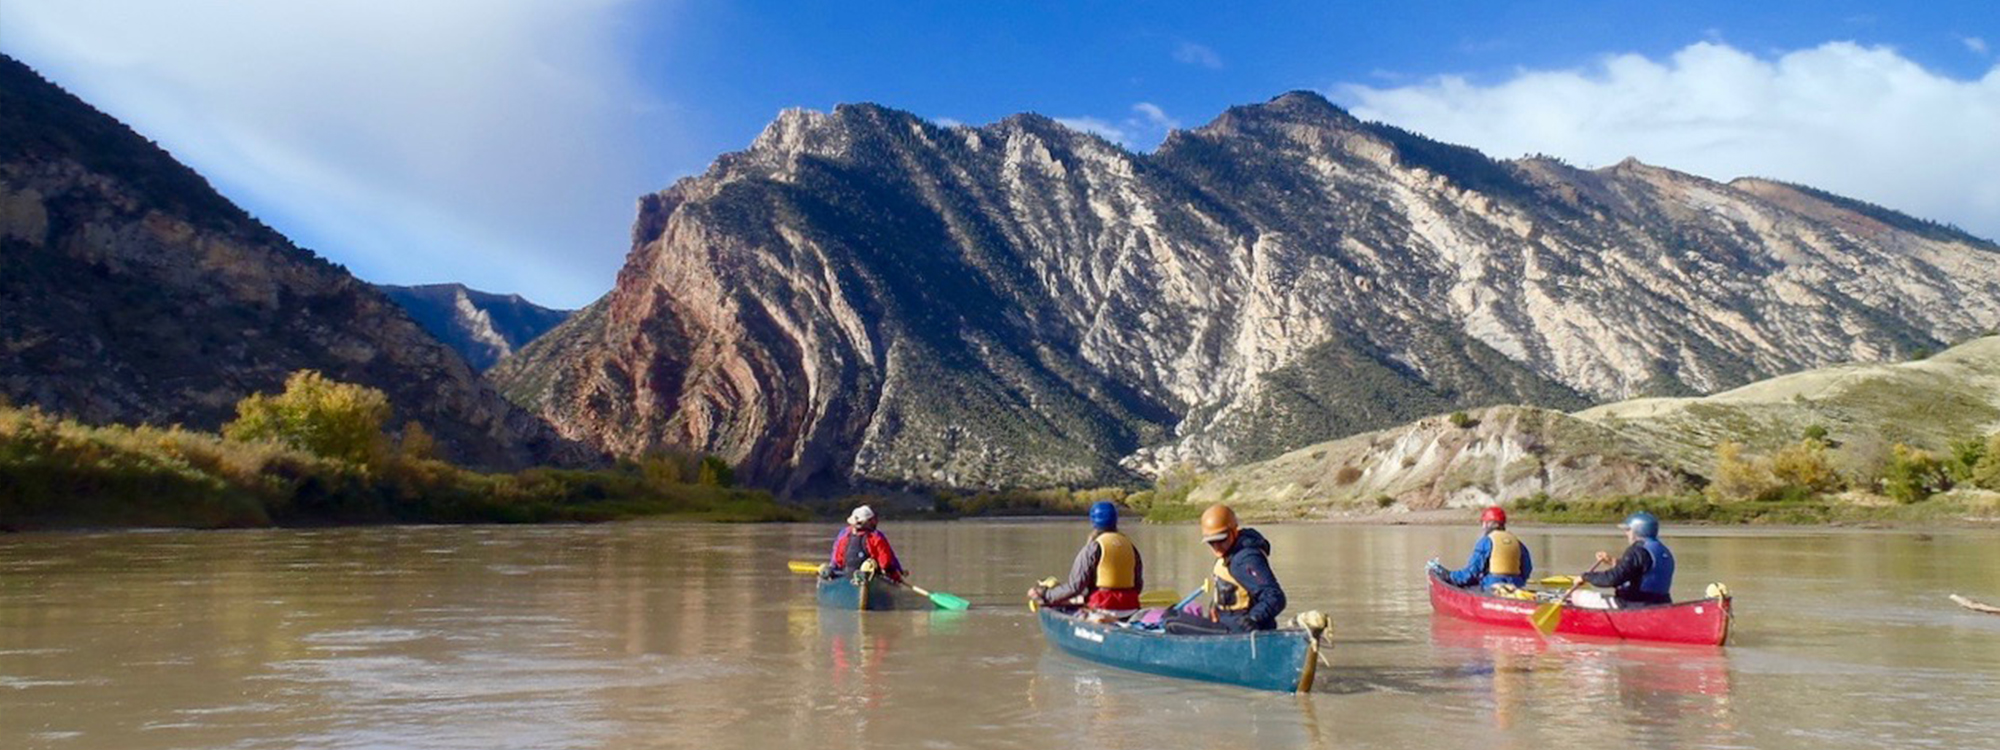 People kayaking with mountains in the background